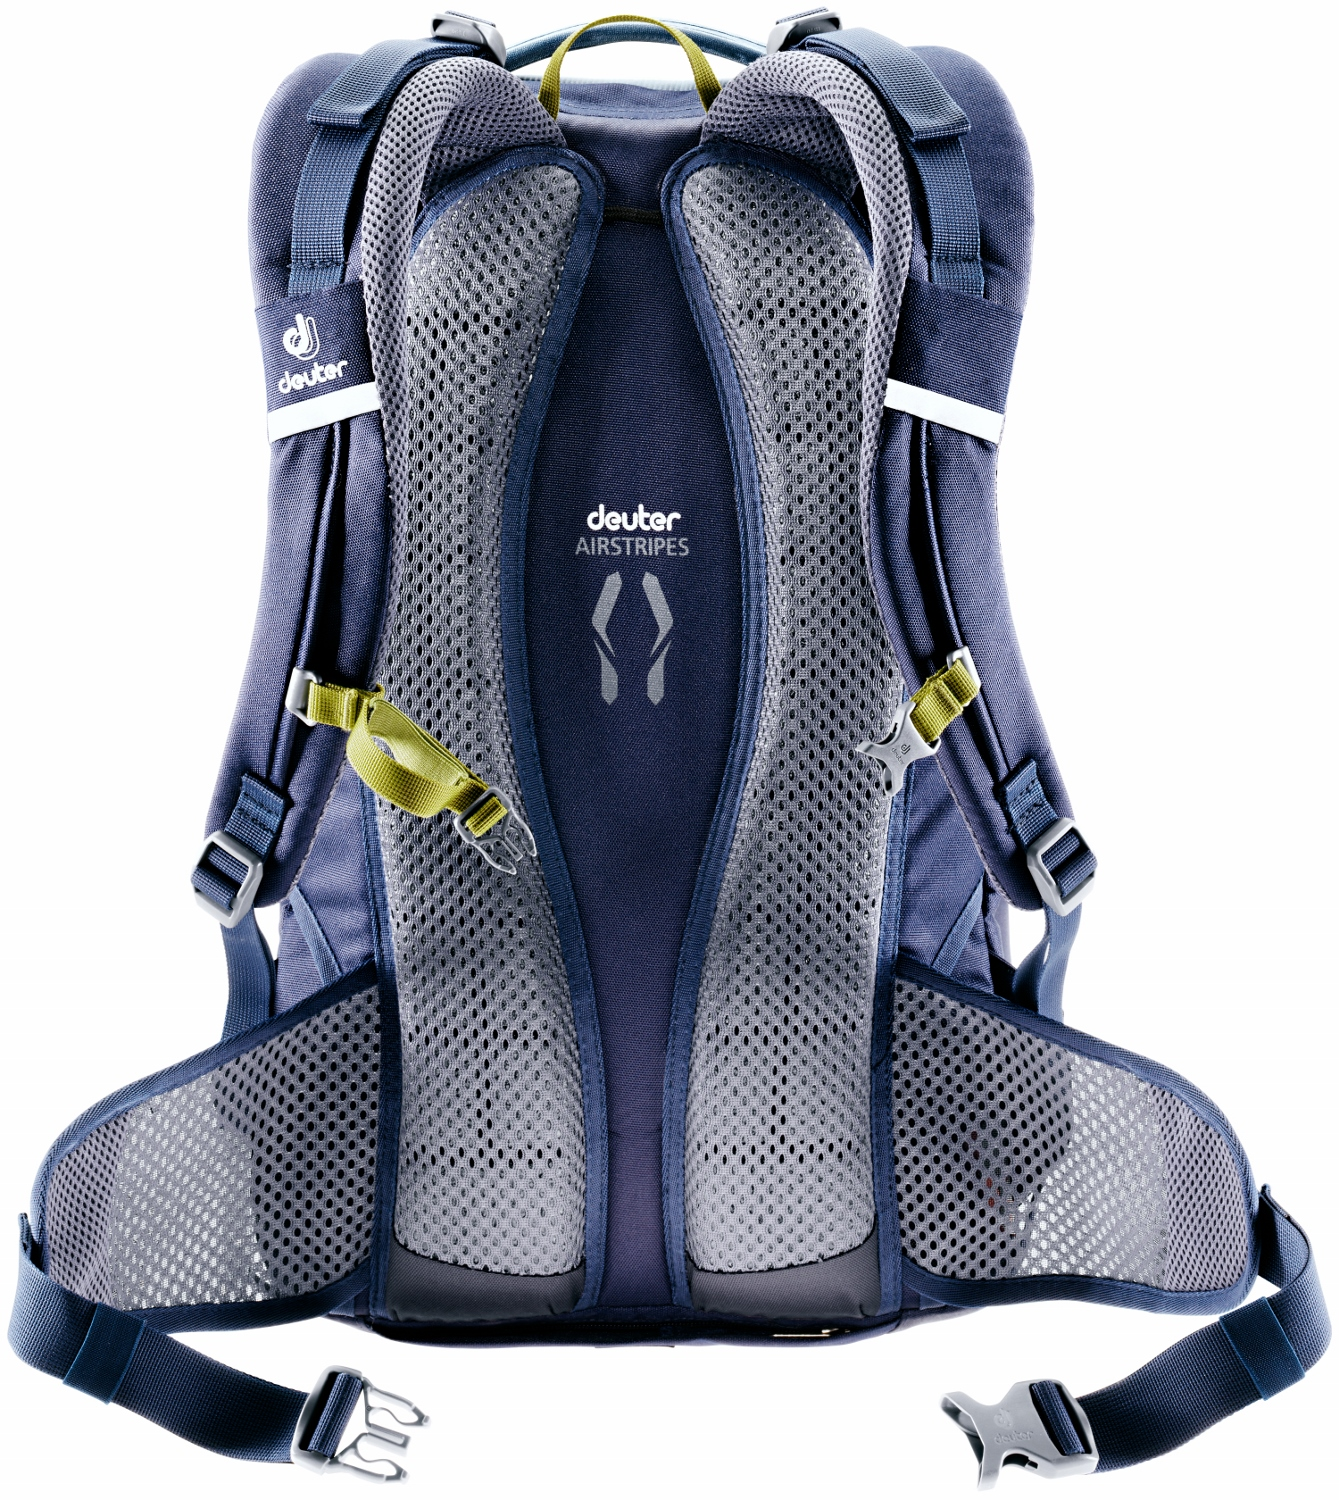 deuter giga bike 2017 rucksack mit laptopfach 15 6 arctic. Black Bedroom Furniture Sets. Home Design Ideas